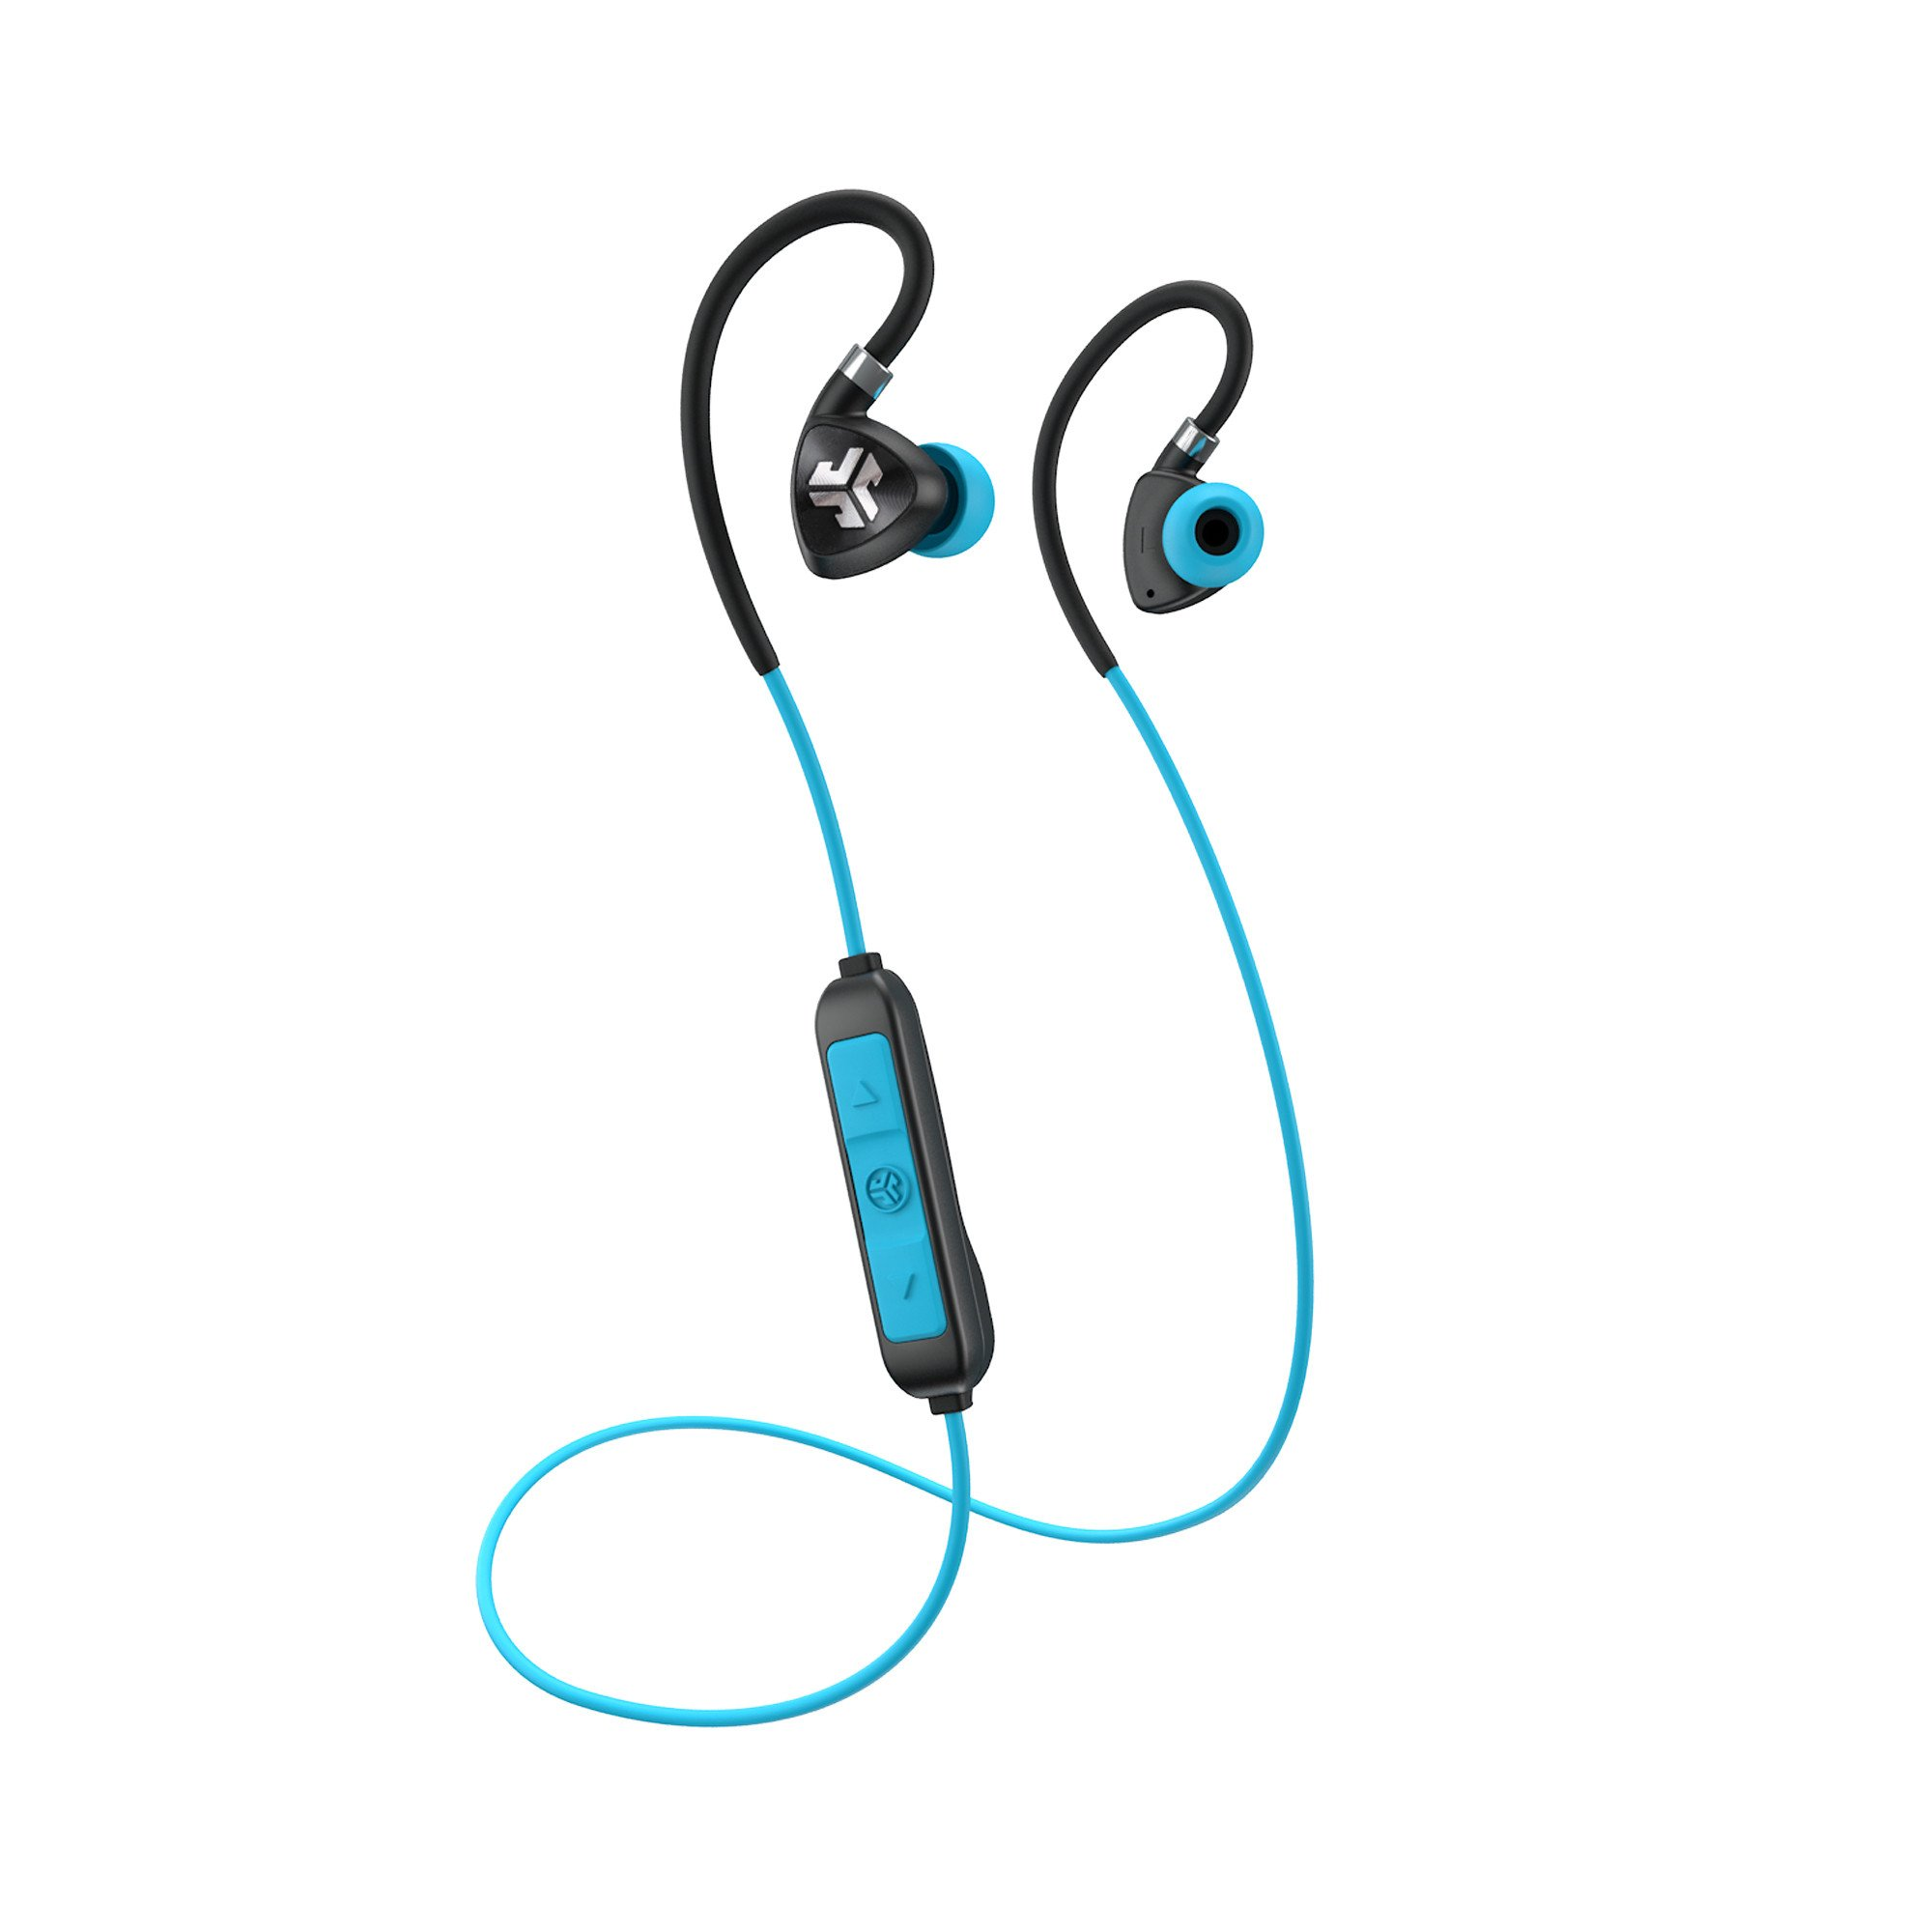 JLab Audio Fit 2.0 Bluetooth Wireless Sport Earbuds - Black / Blue - Titanium 10mm Drivers 6 Hour Battery Life Bluetooth 4.1 IP55 Sweat Proof Rating Extra Gel Tips Flexible Memory Wire